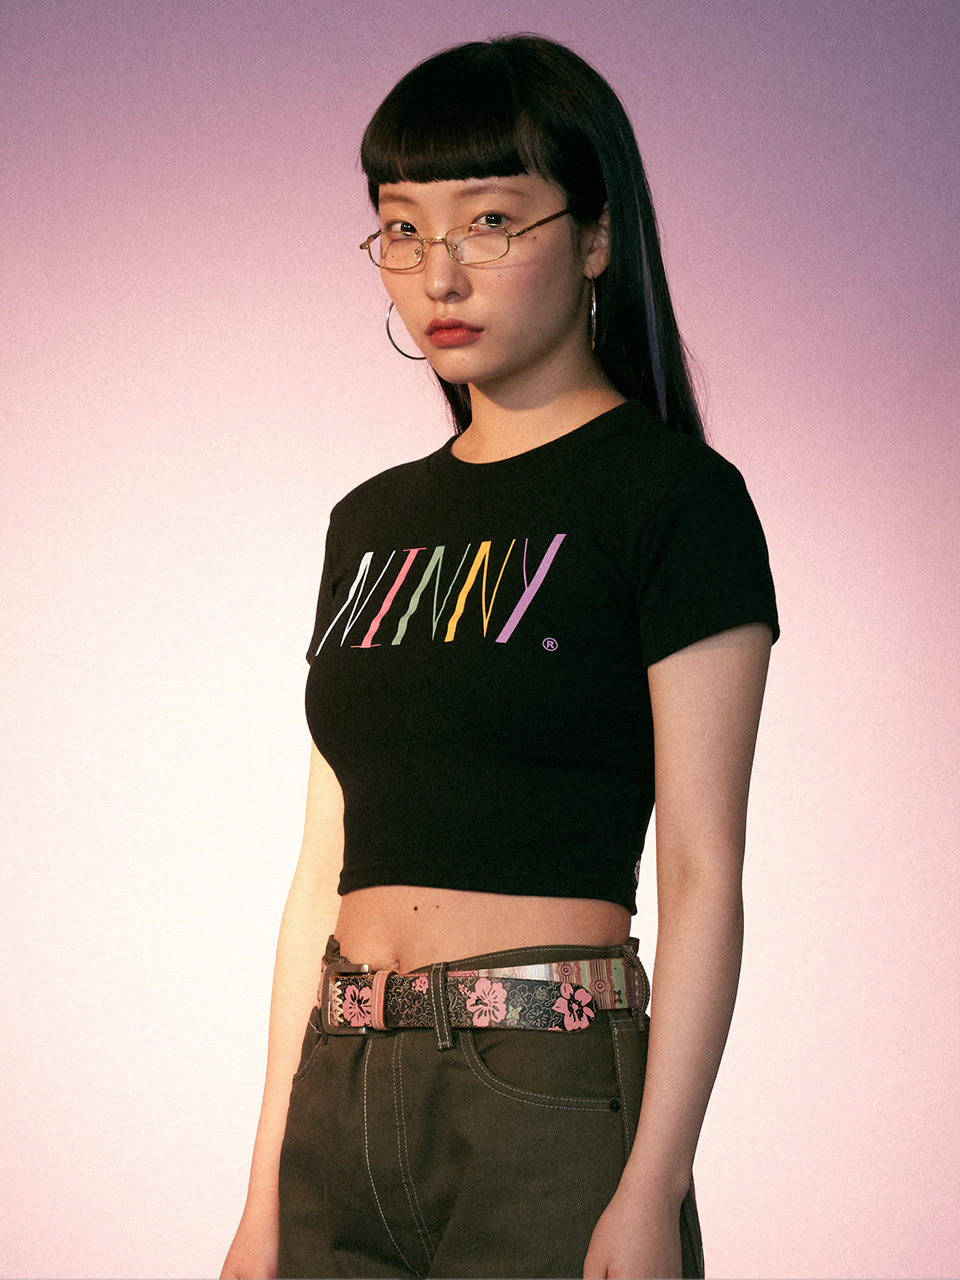 (CTC2) NINNY RAINBOW LOGO CROP TOP BLACK